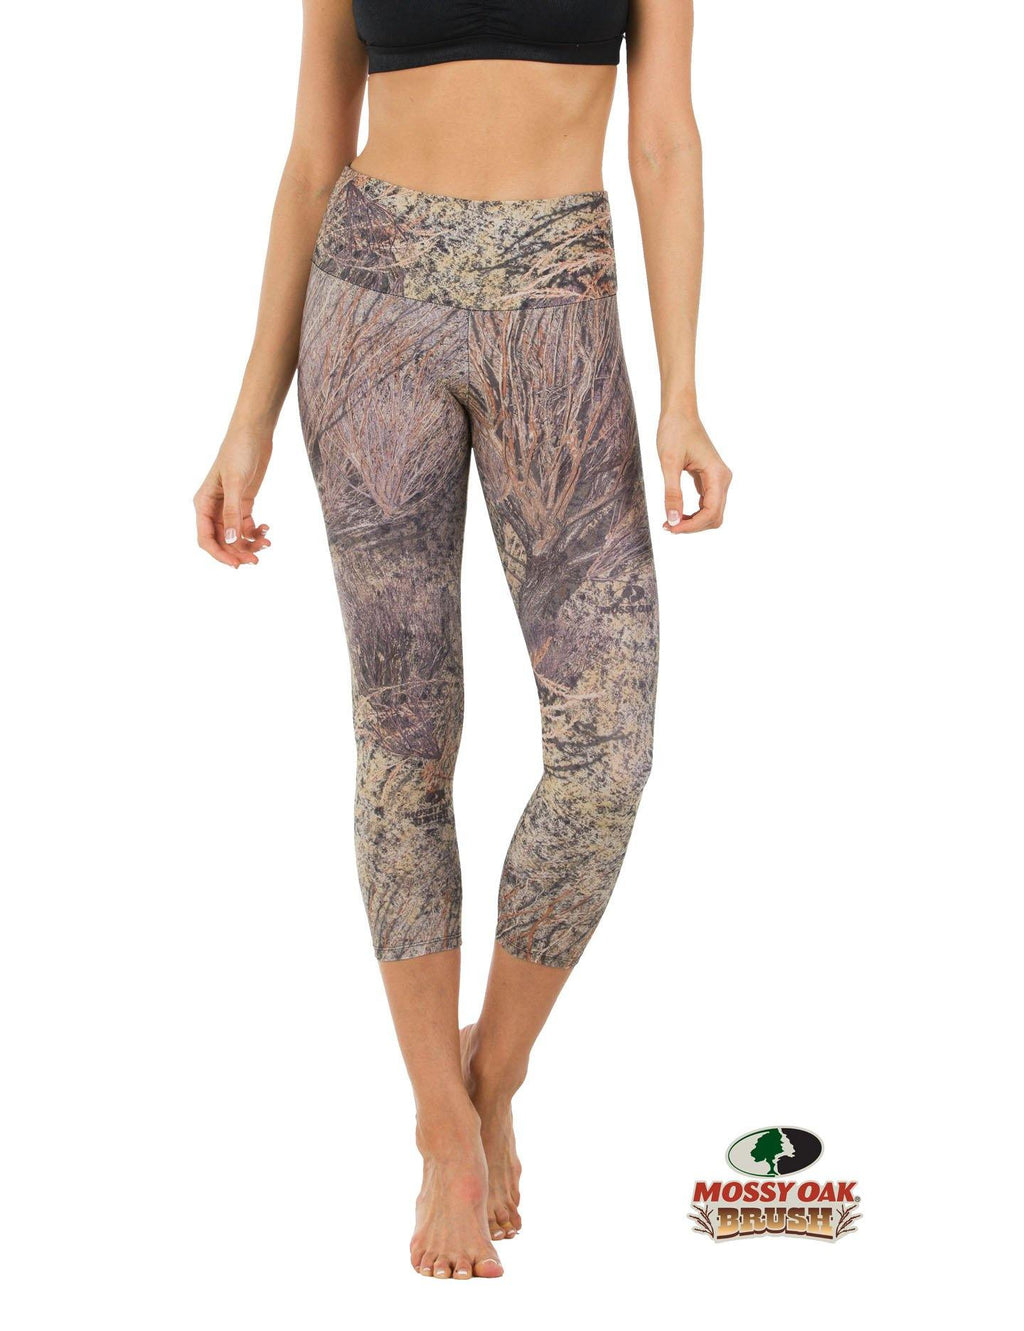 Apsara Leggings High Waist Cropped, Mossy Oak Brush - Apsara Style